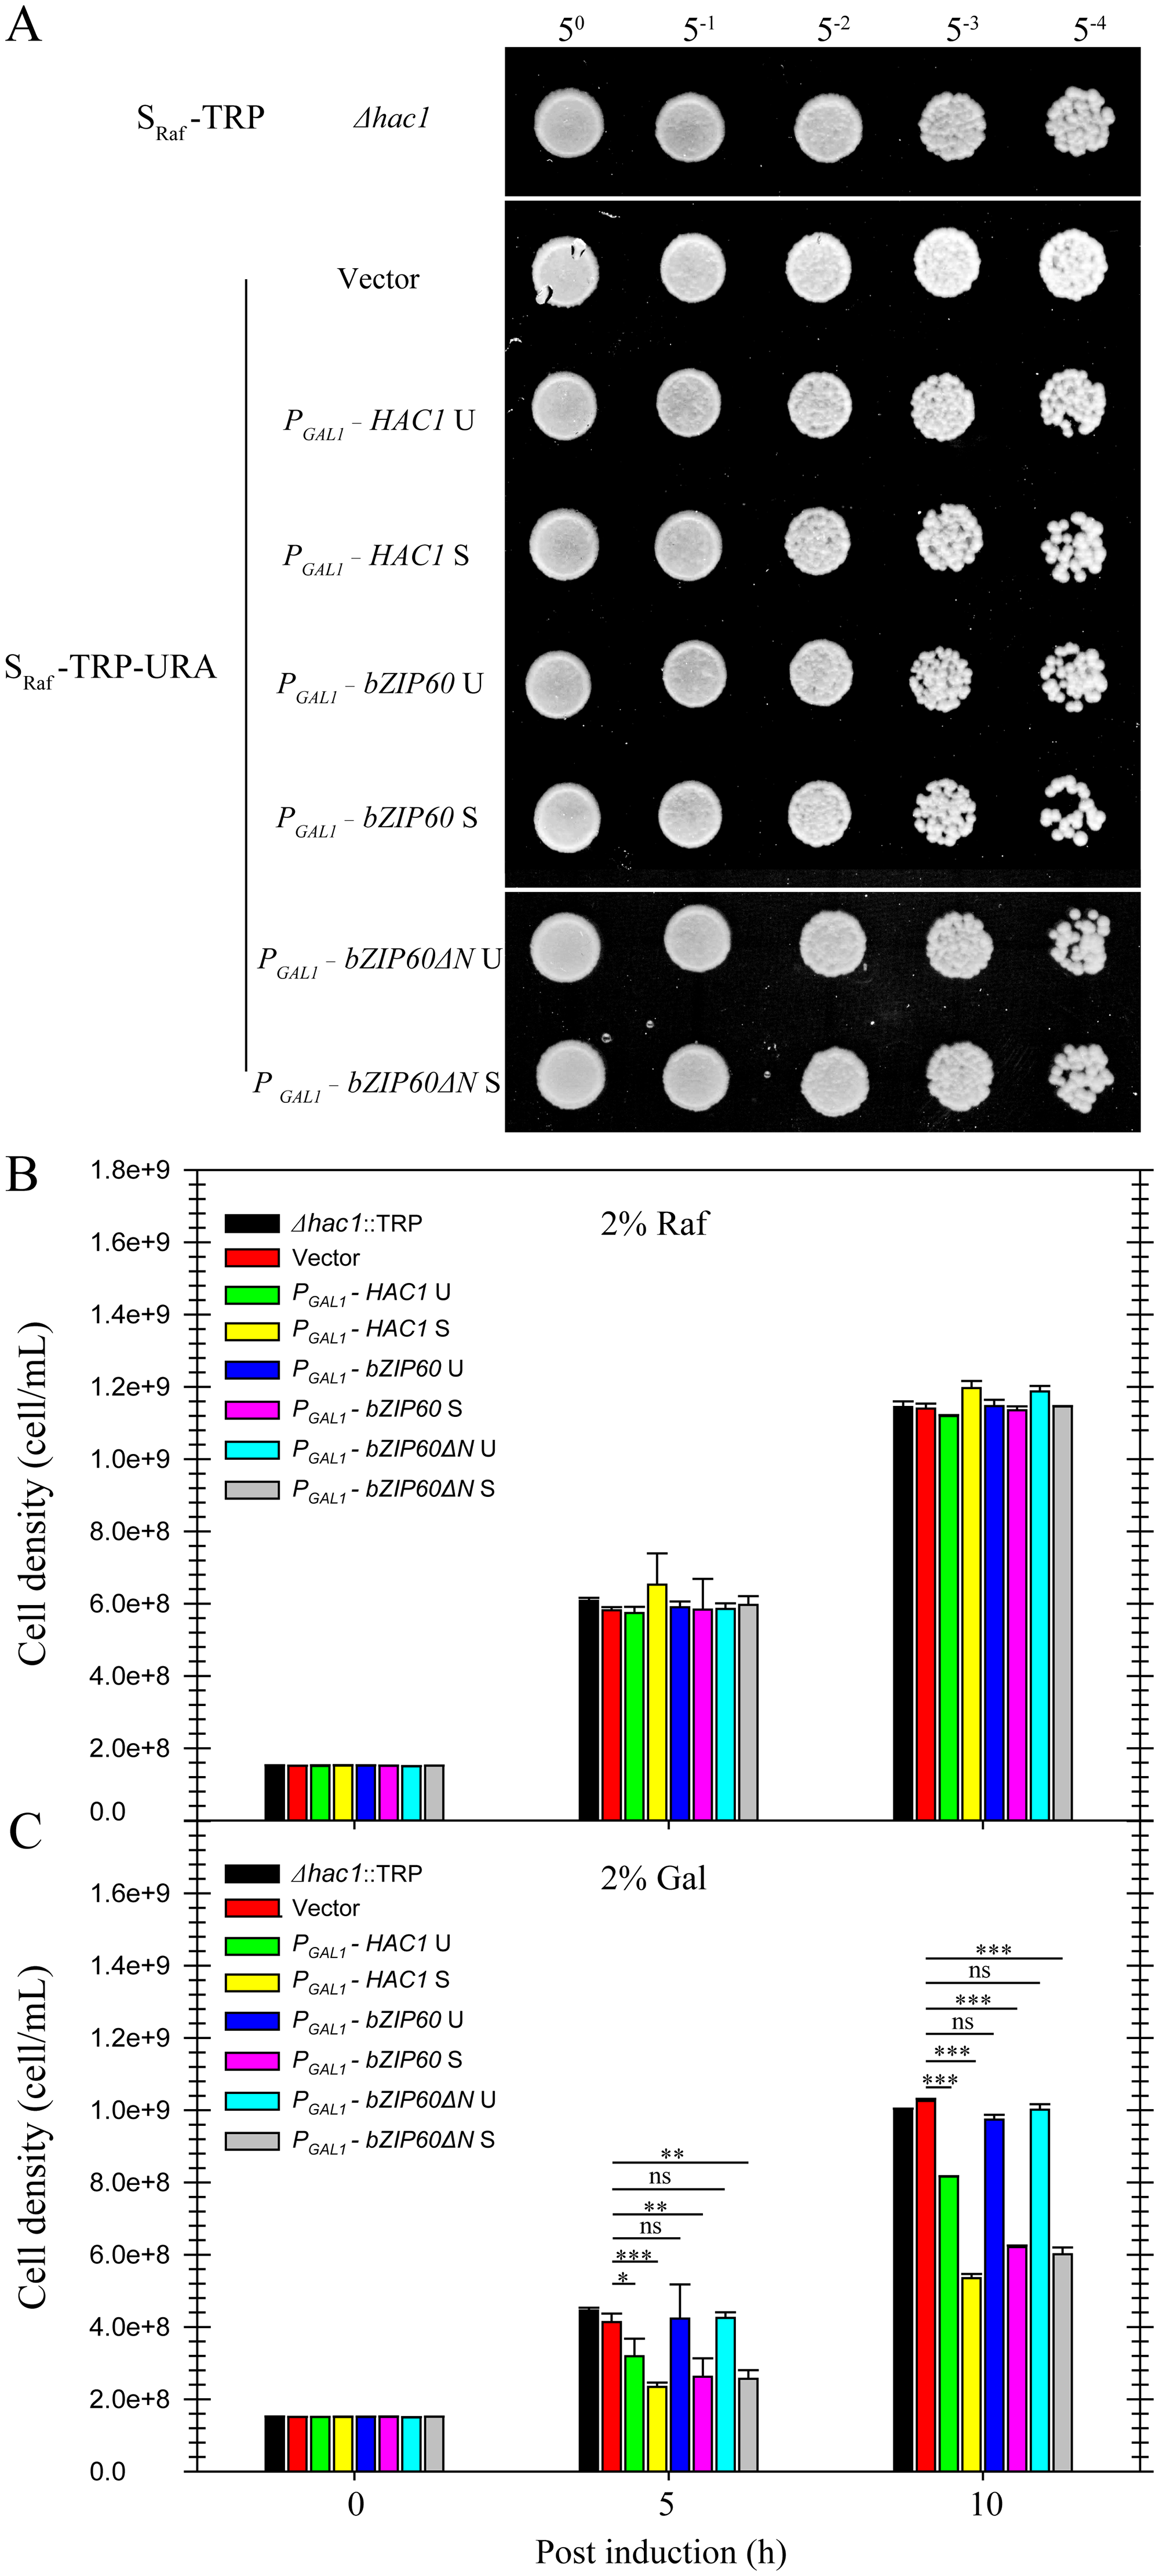 Effects of constitutive expression of <i>HAC1</i> and <i>bZIP60</i> on yeast growth.